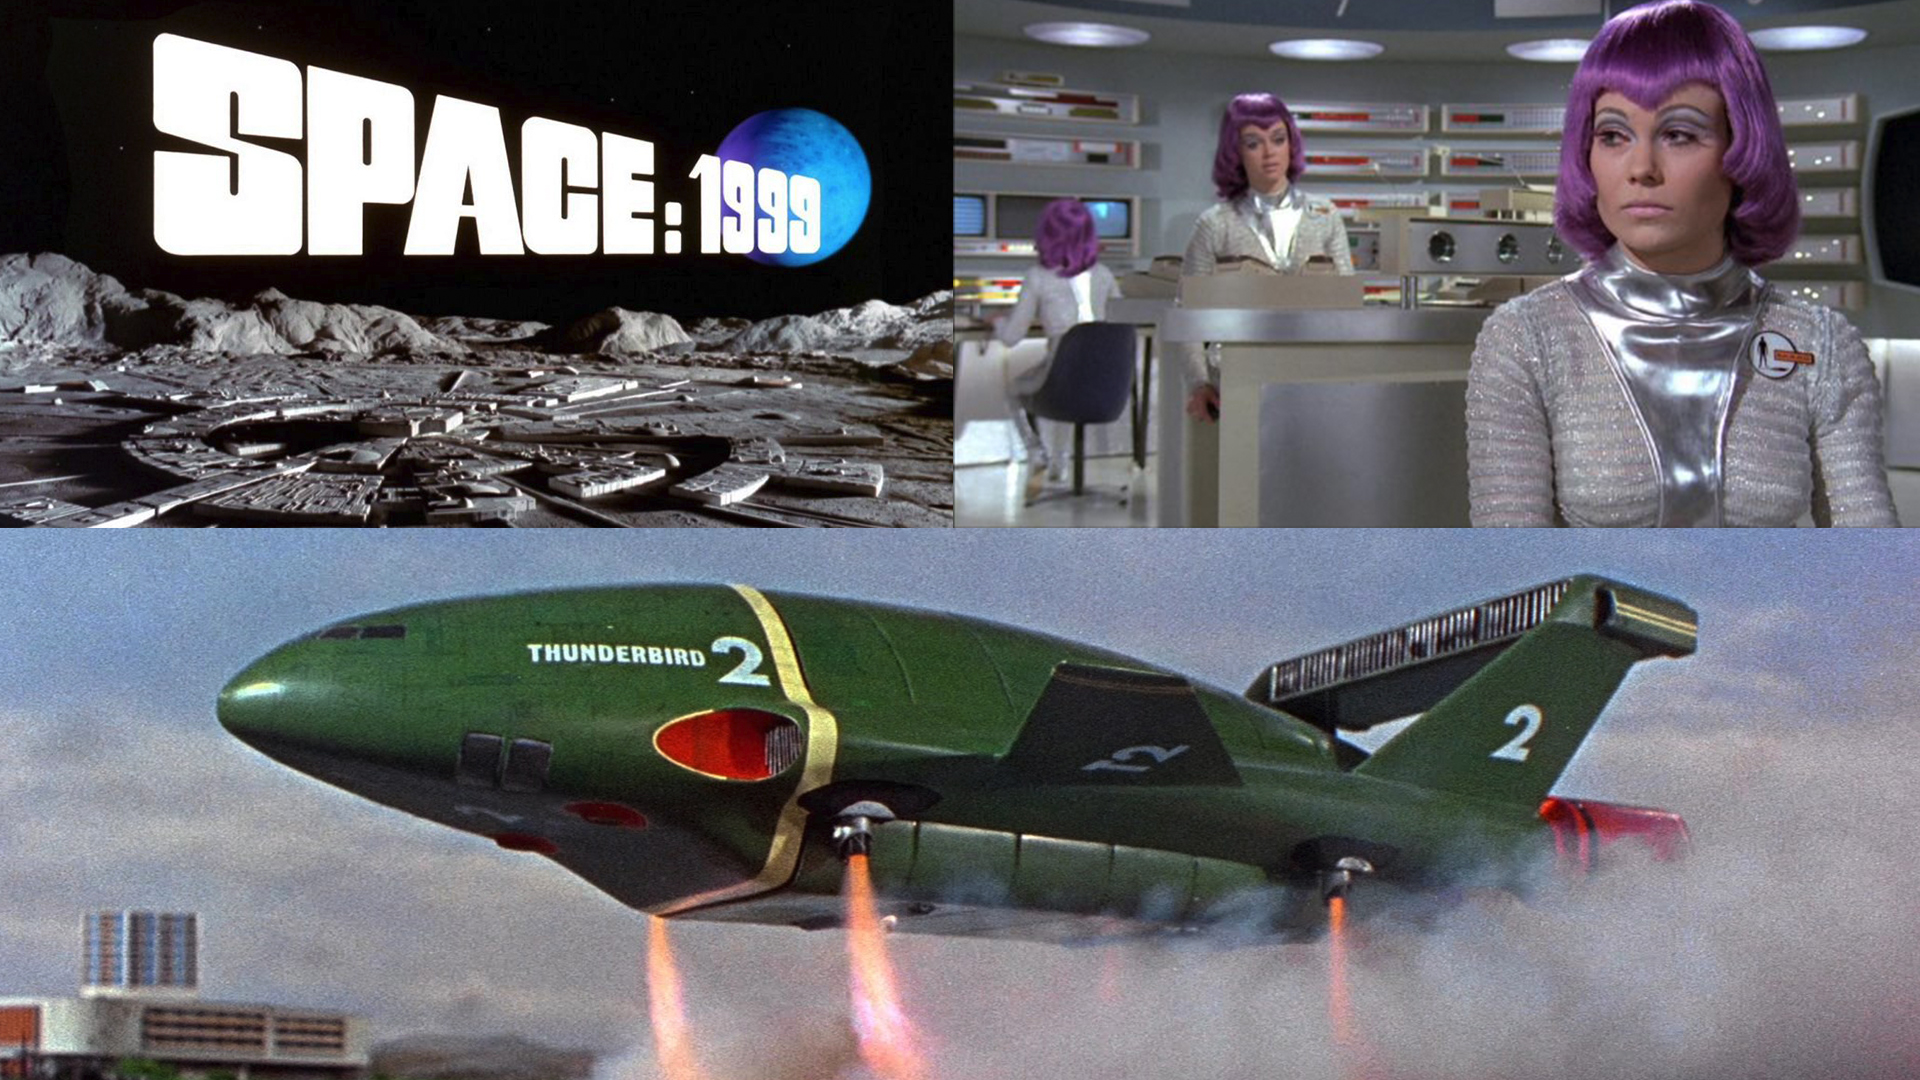 Our Top 10 Gerry Anderson Title Sequences - A Nostalgic Feast of Cult TV